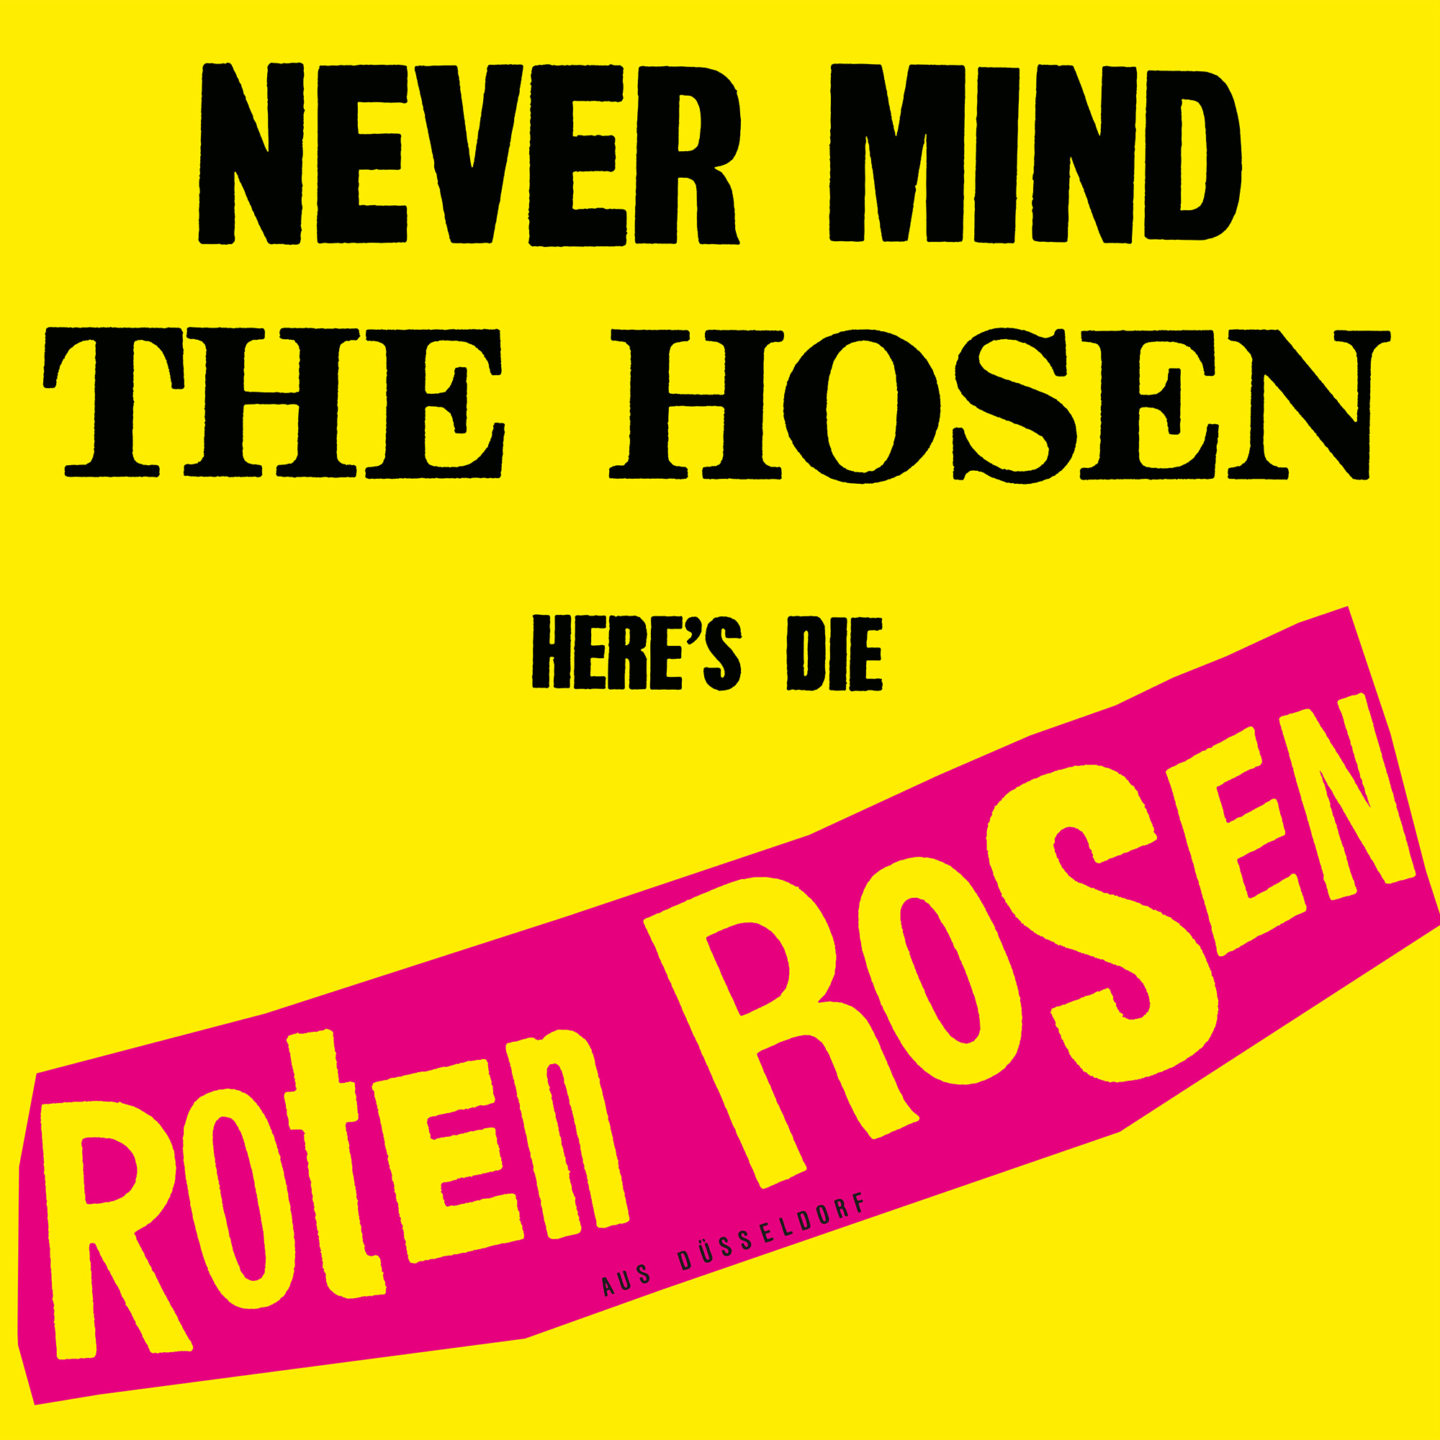 Die Toten Hosen – Never mind the Hosen (Remastered)